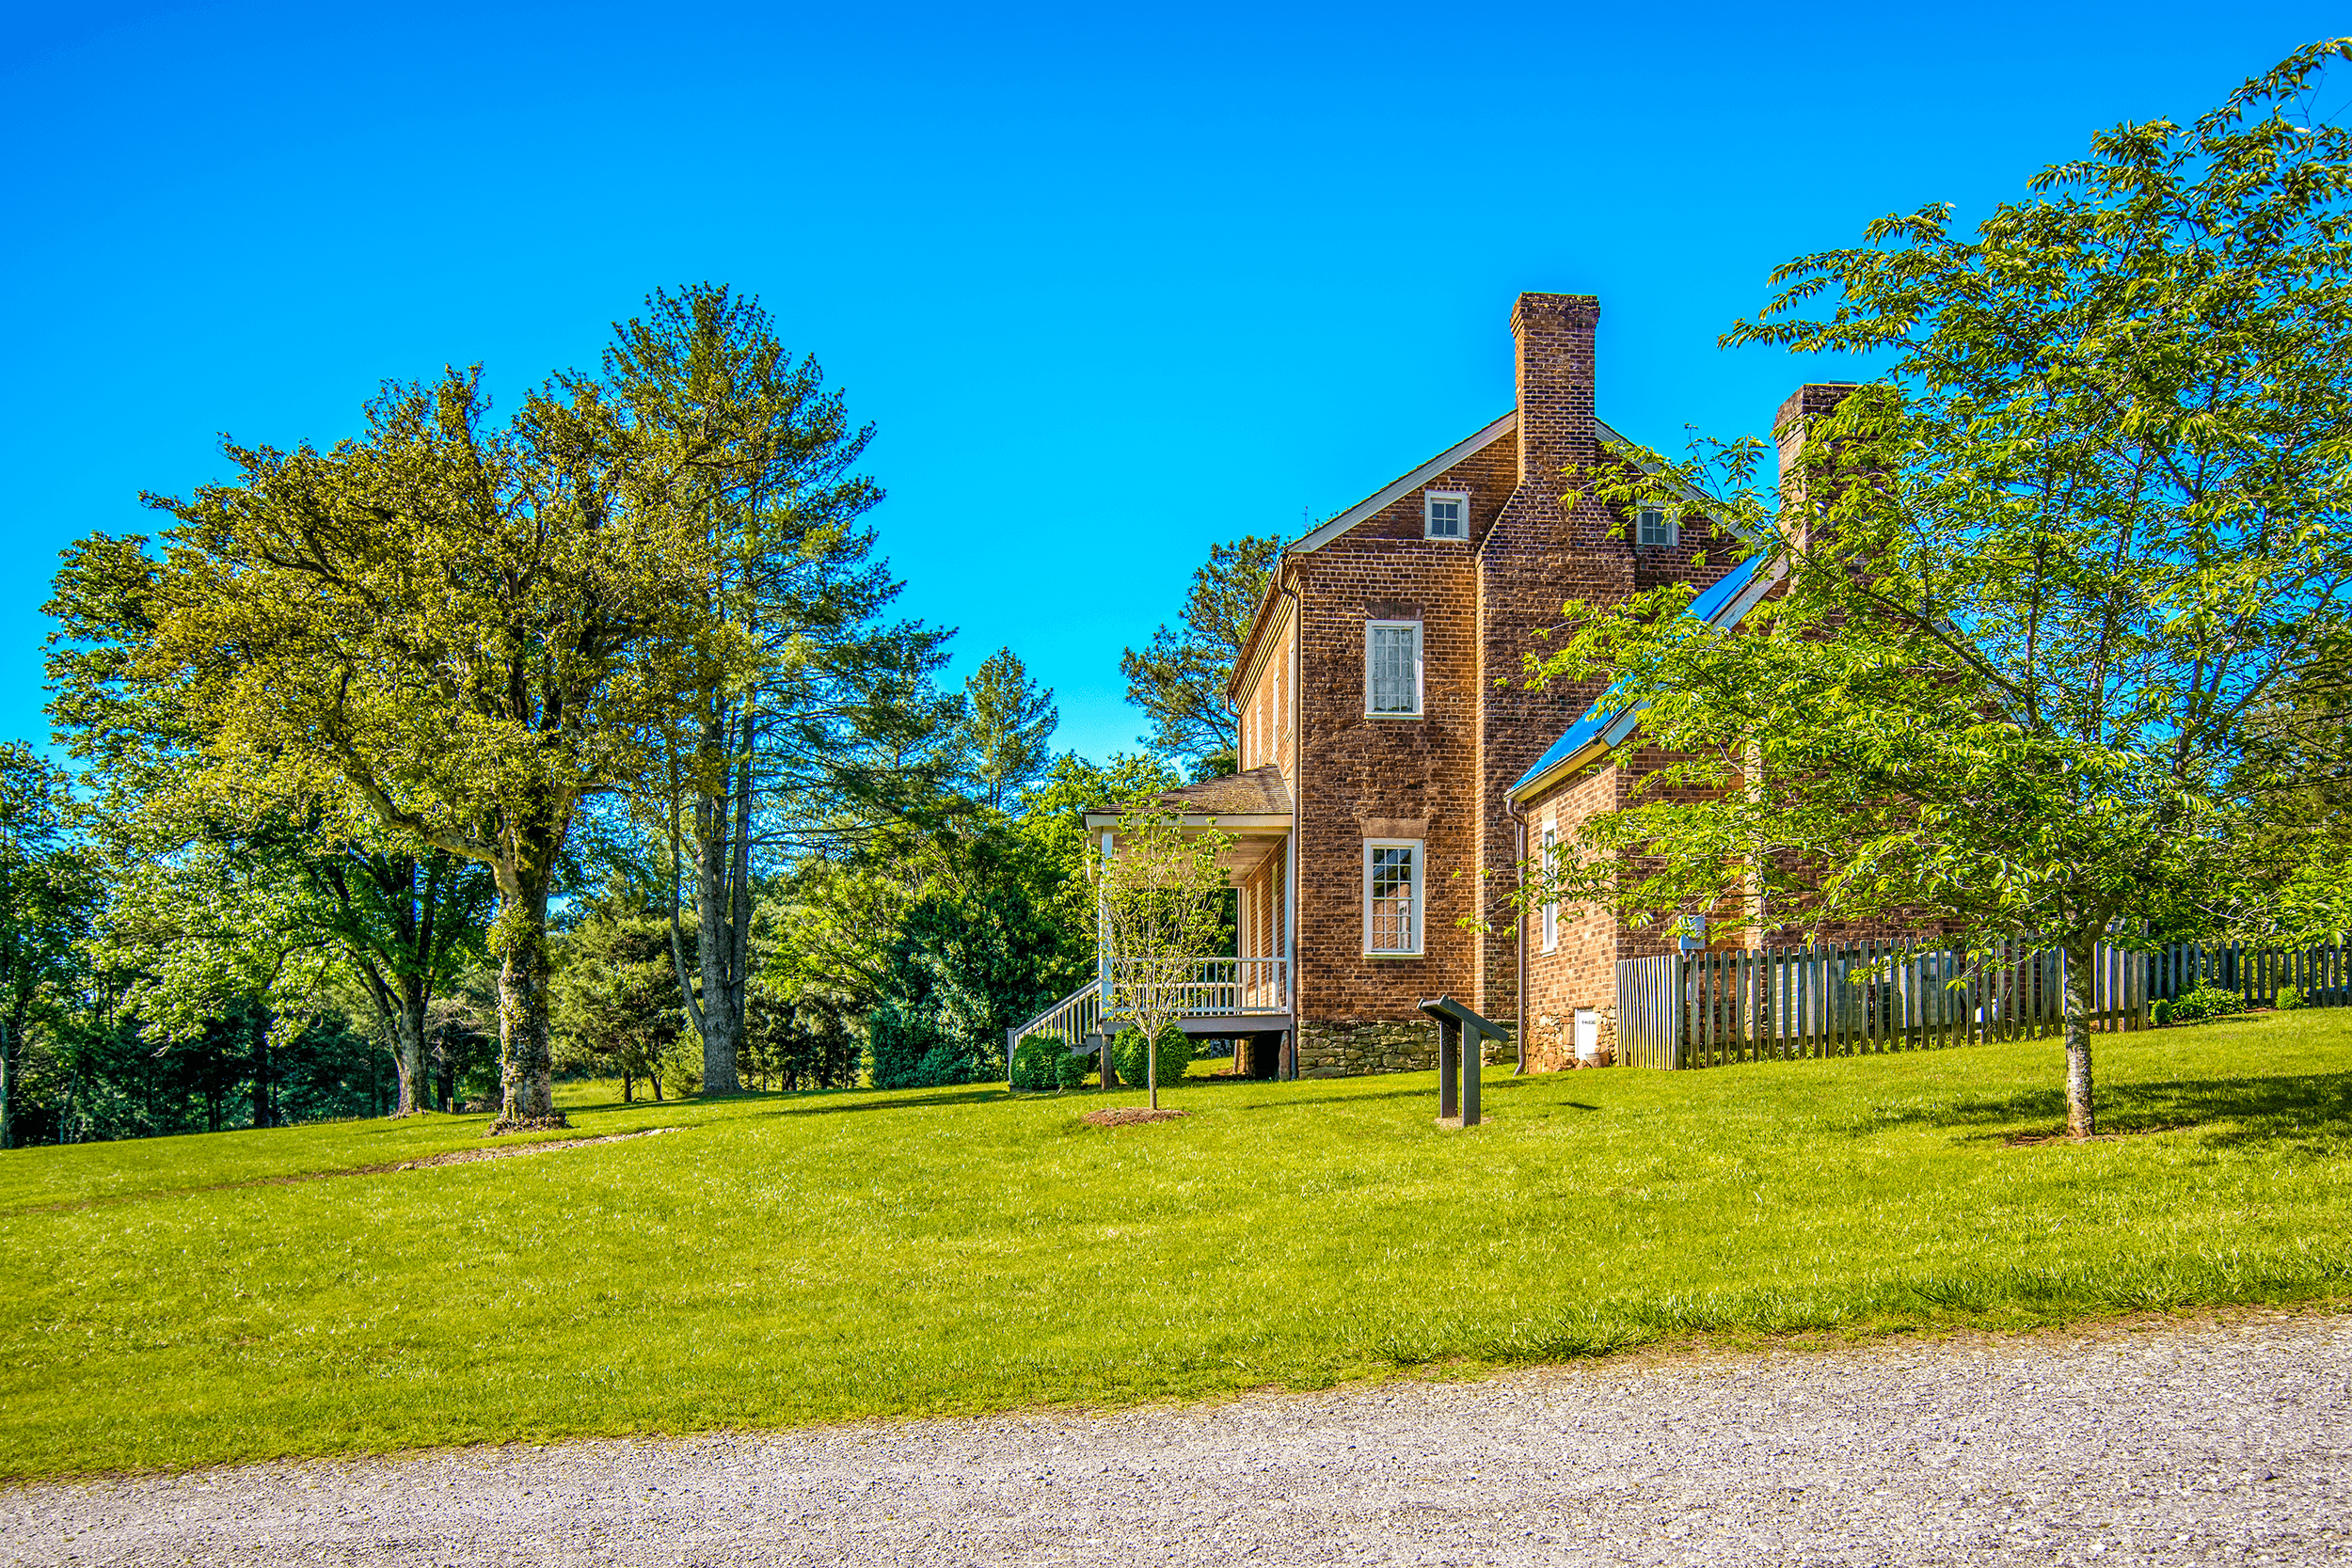 The  Historic McDowell House  is a beautifully restored plantation home from 1812 and the oldest brick home in Burke County. Today a museum, the  Historic McDowell House  has been meticulously restored to its Federal style appearance of 1812. It portrays life on a 1,500-acre plantation in the early to mid 1800s, before the American Civil War (1861-1865).